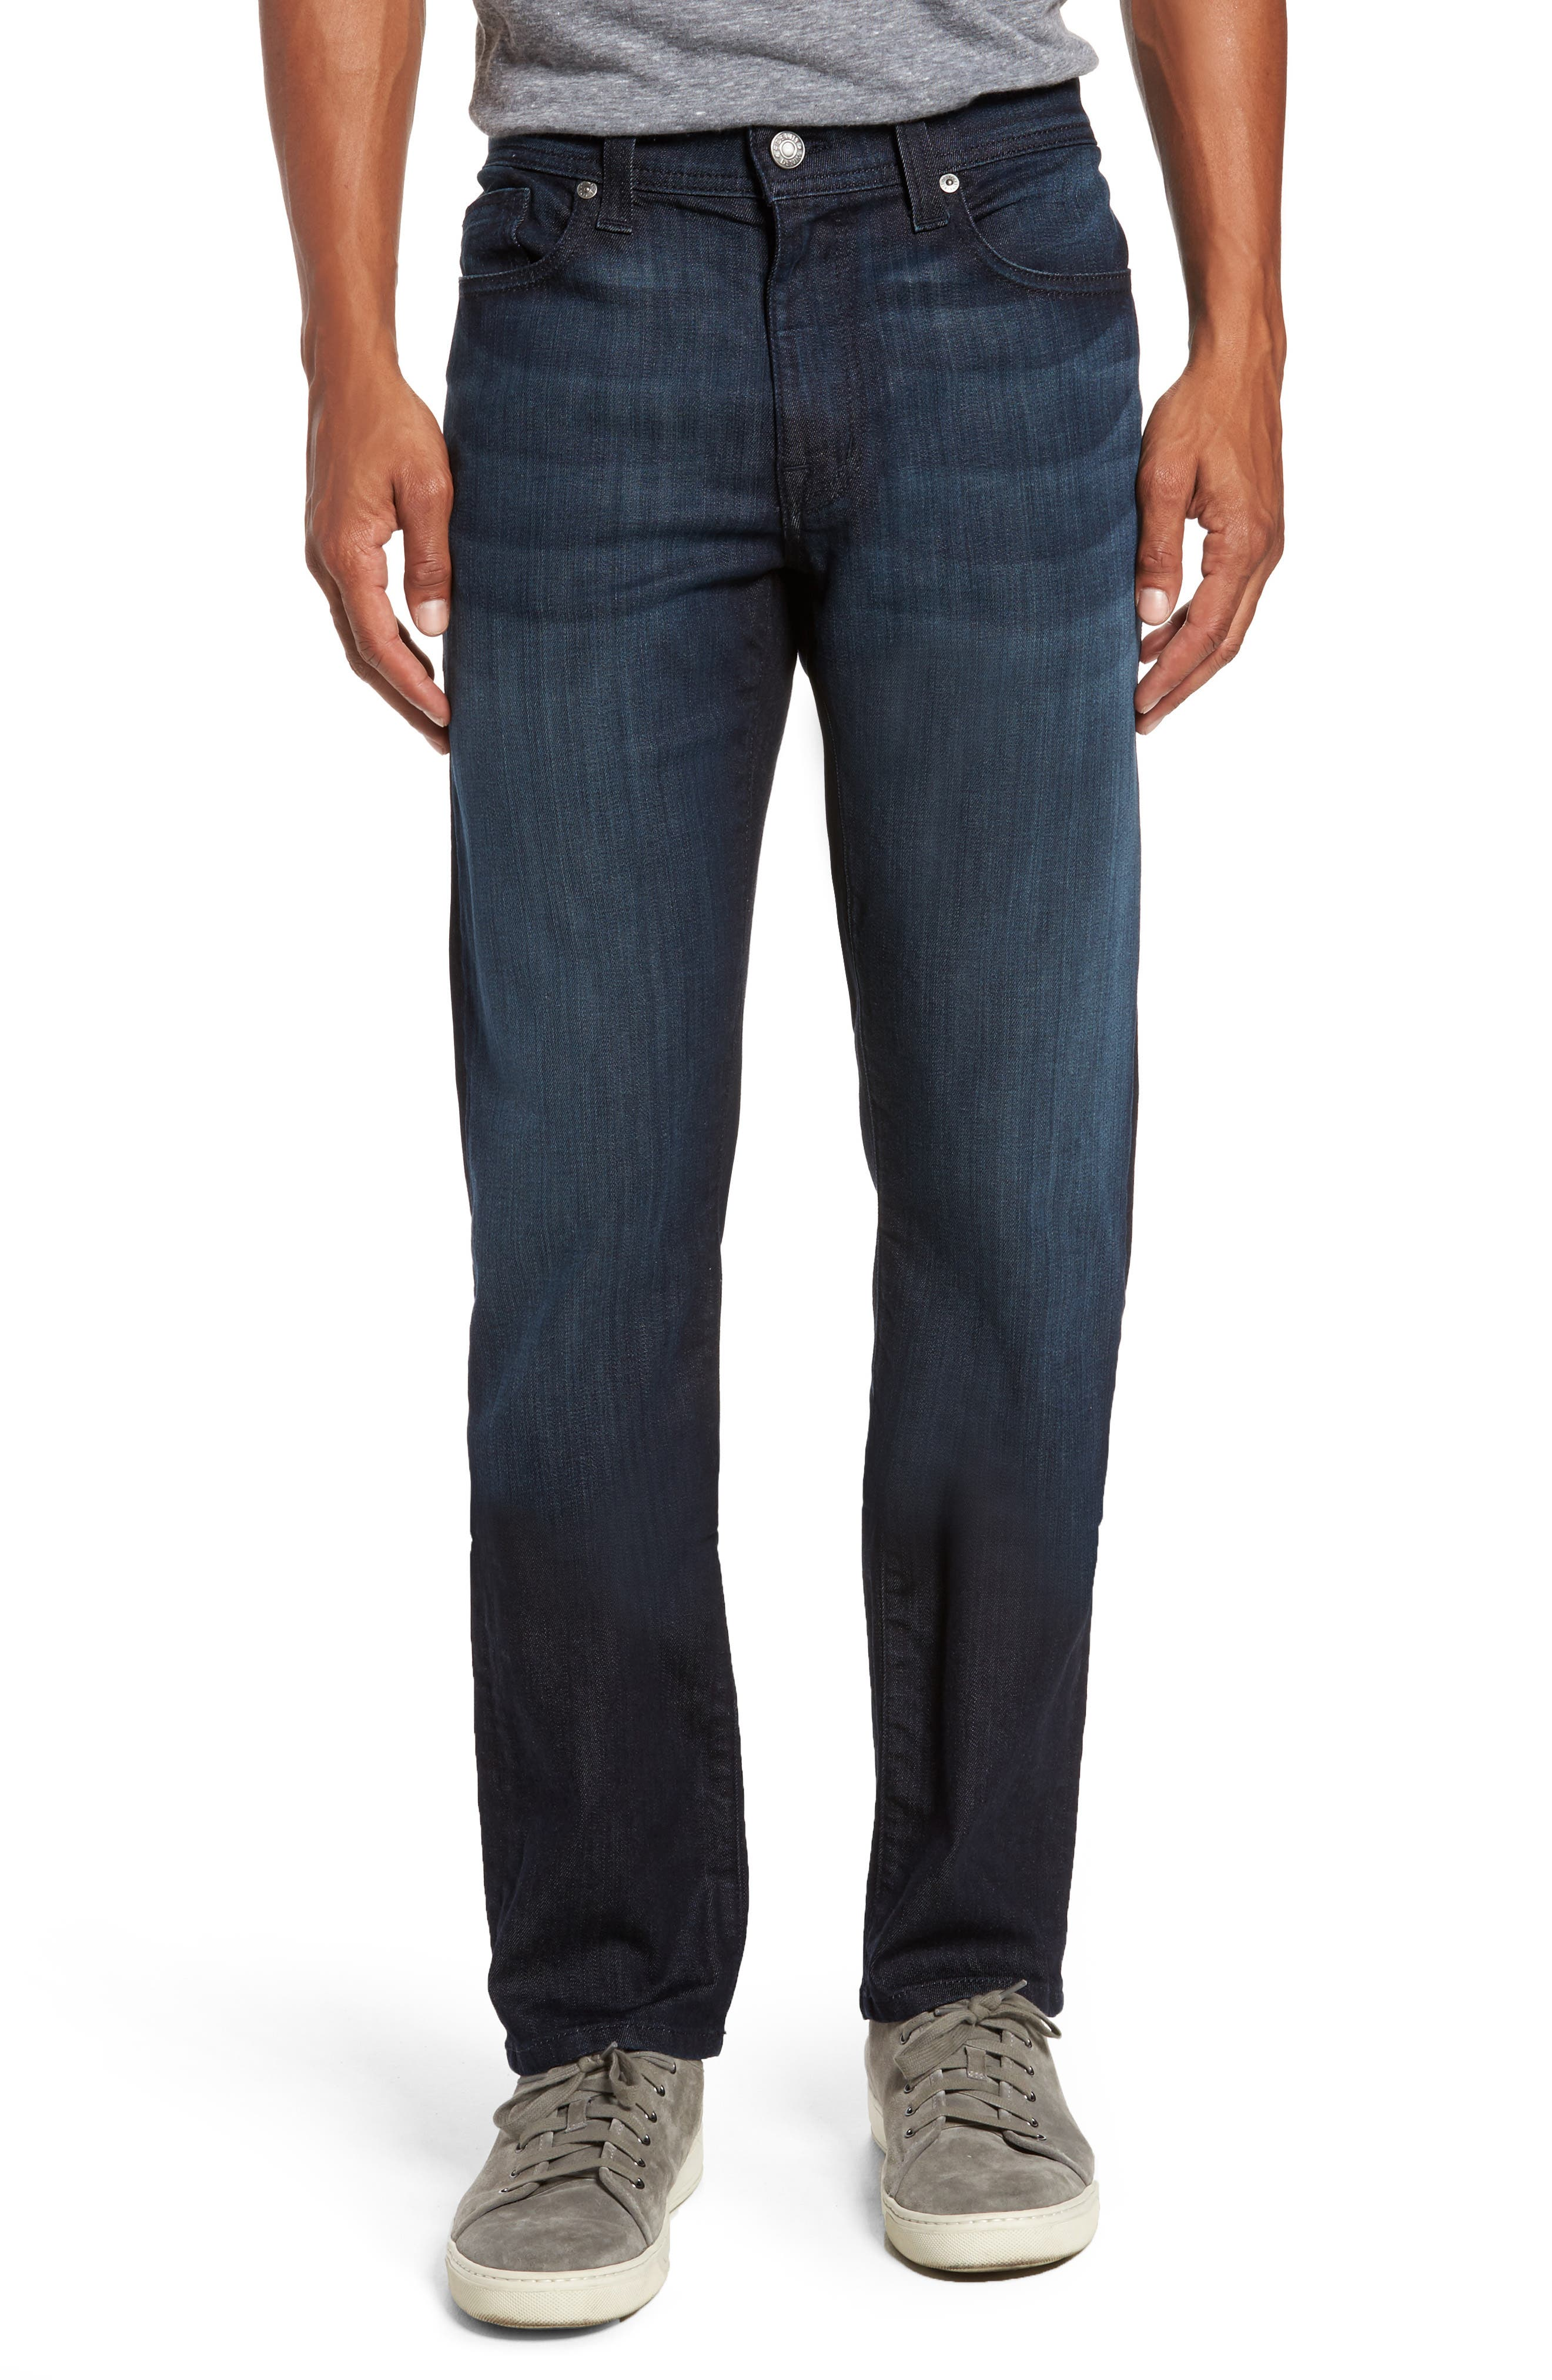 Alternate Image 1 Selected - Fidelity Denim Jimmy Slim Straight Fit Jeans (Brooklyn Blue)